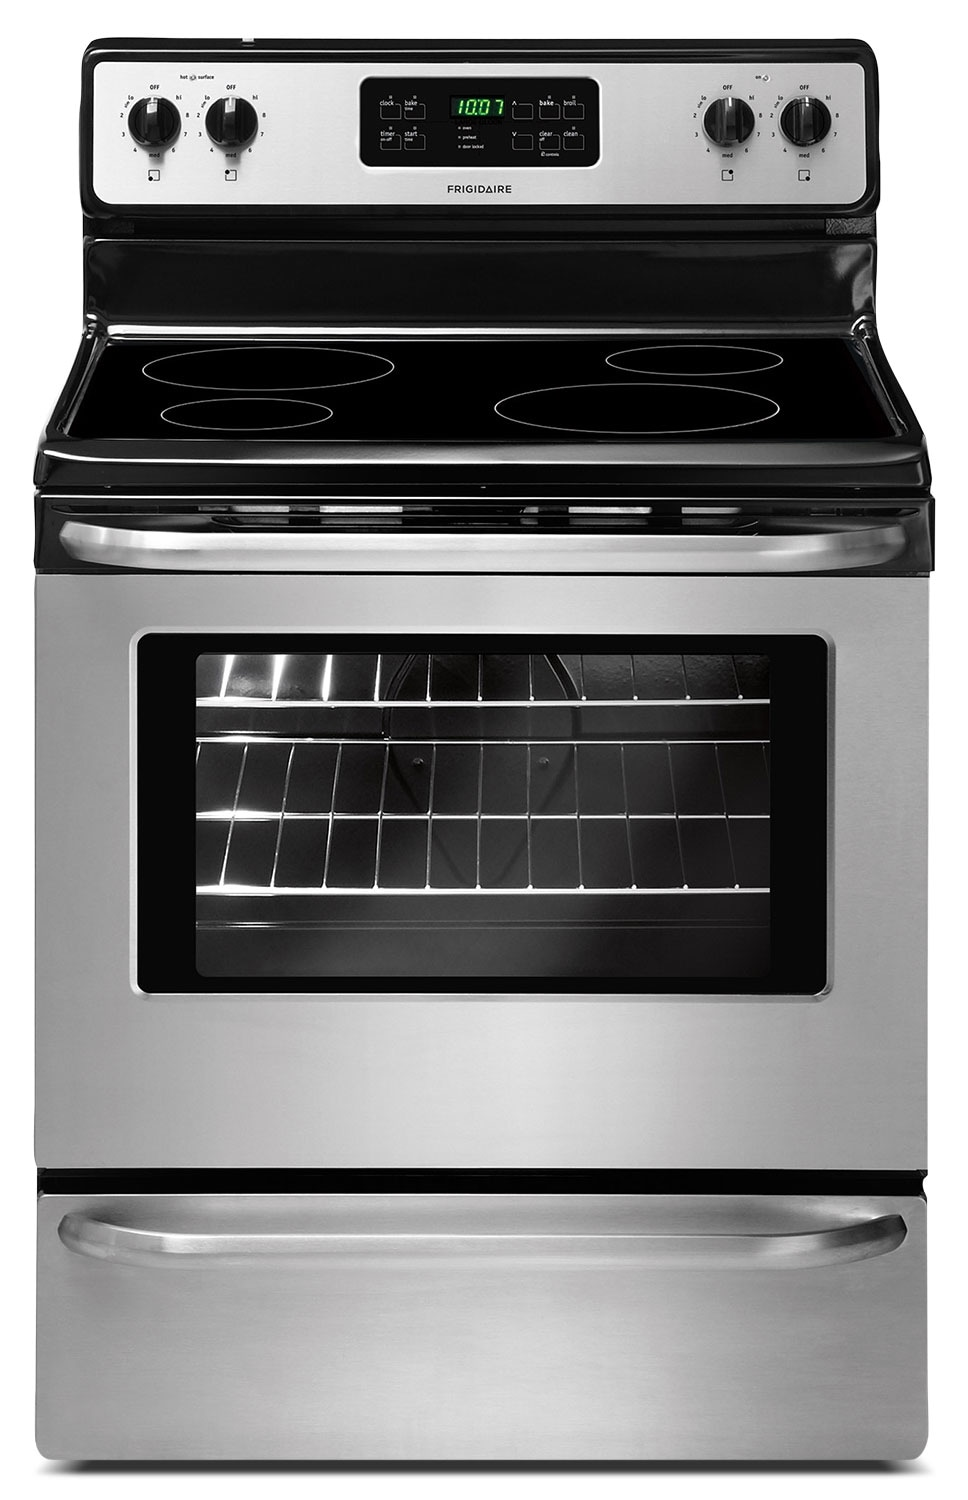 Cooking Products - Frigidaire 5.3 Cu. Ft. Self-Clean Freestanding Electric Range - Stainless Steel